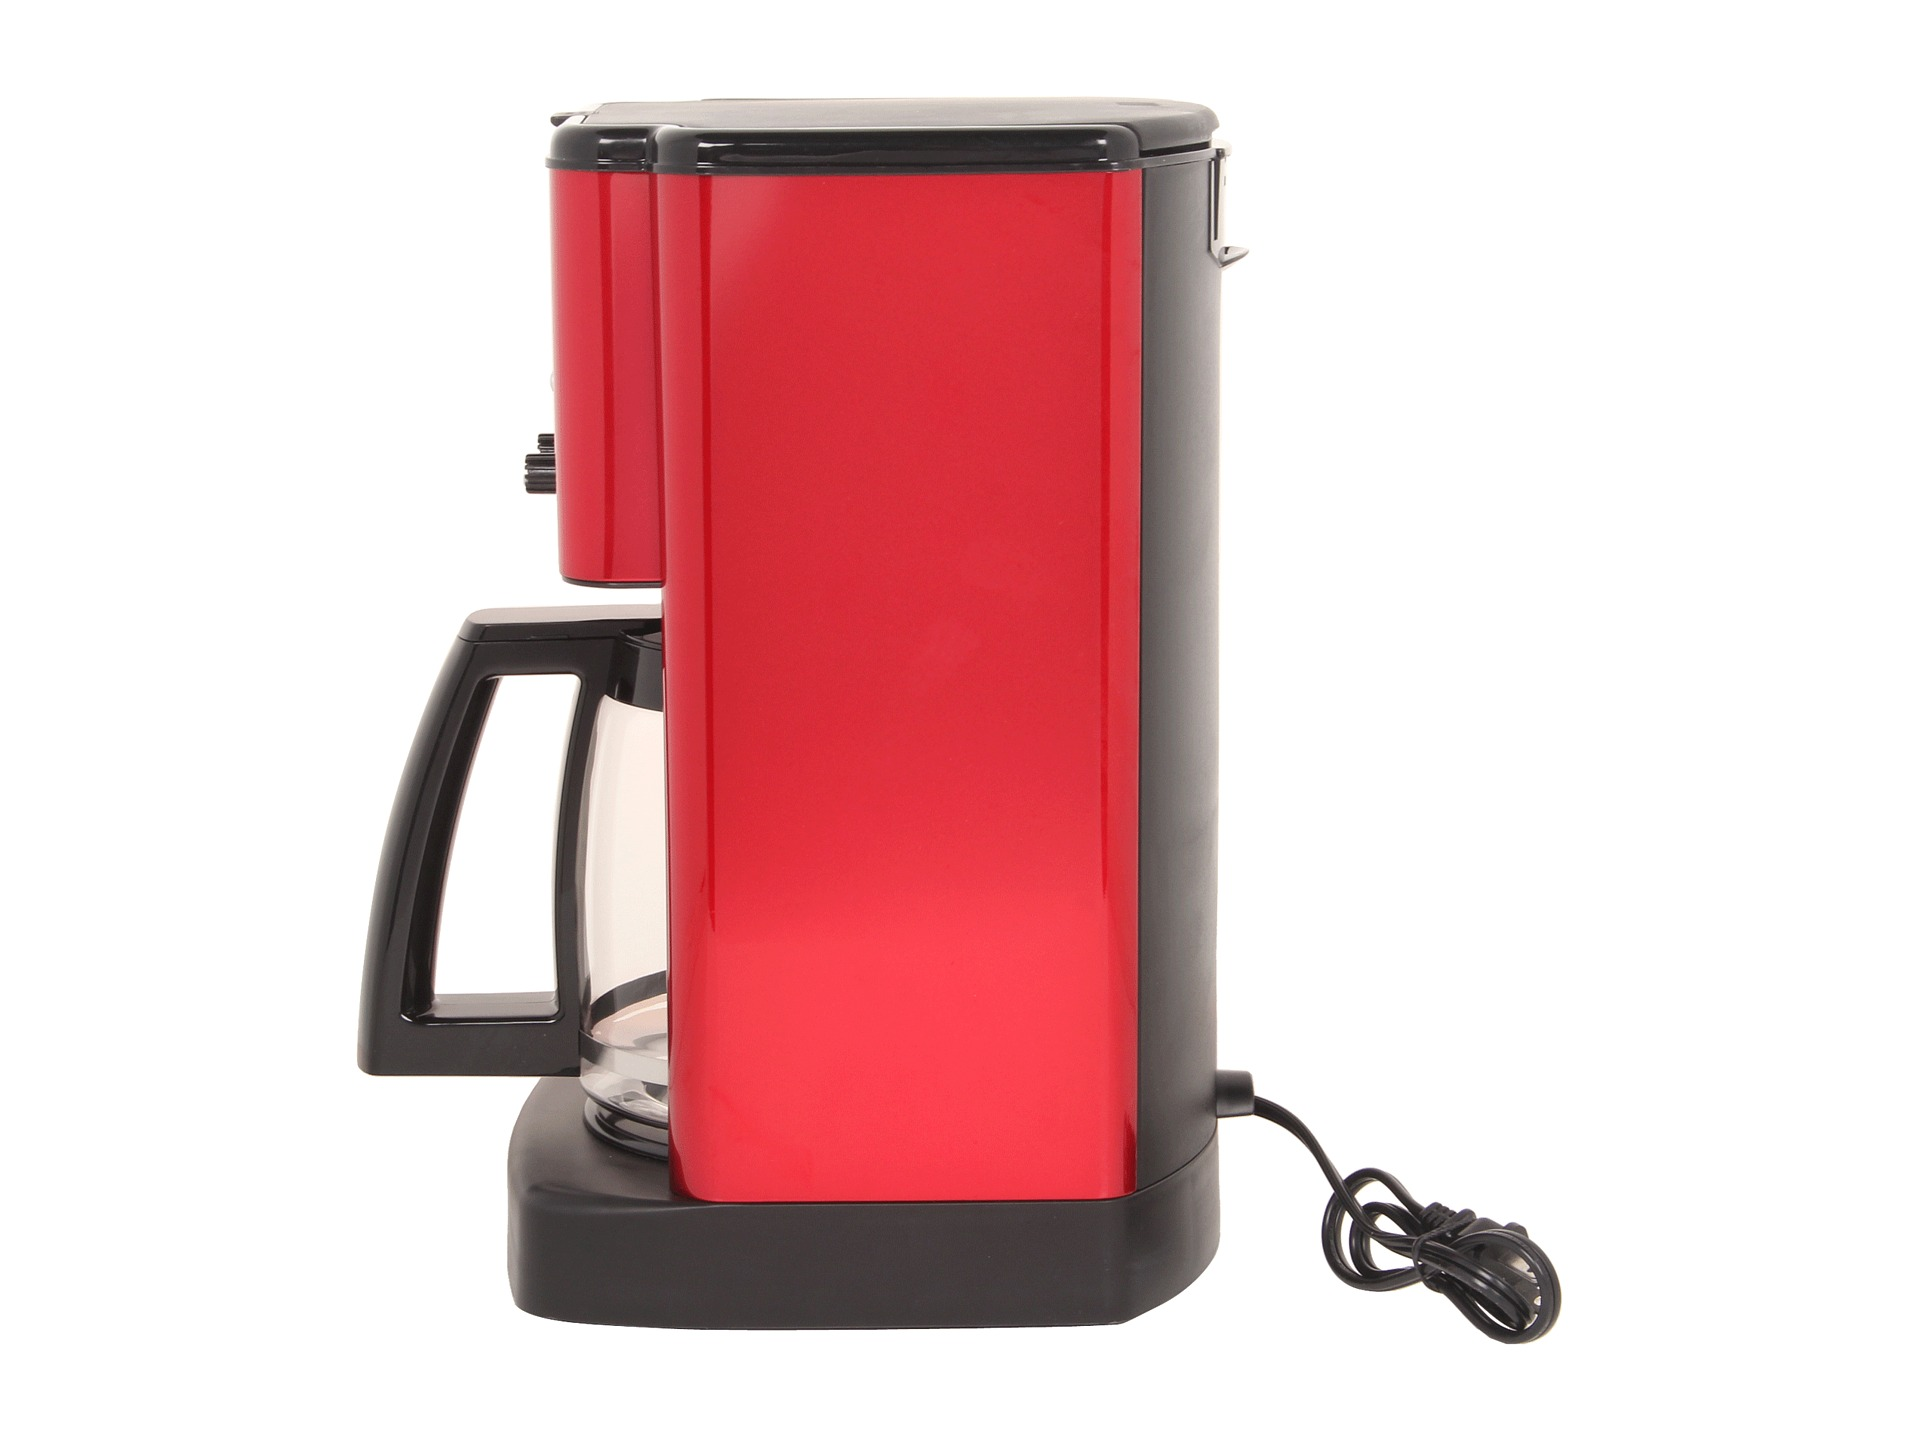 Cuisinart Dcc 1200 Brew Central 12 Cup Programmable Coffee Maker Metallic Red Shipped Free at ...